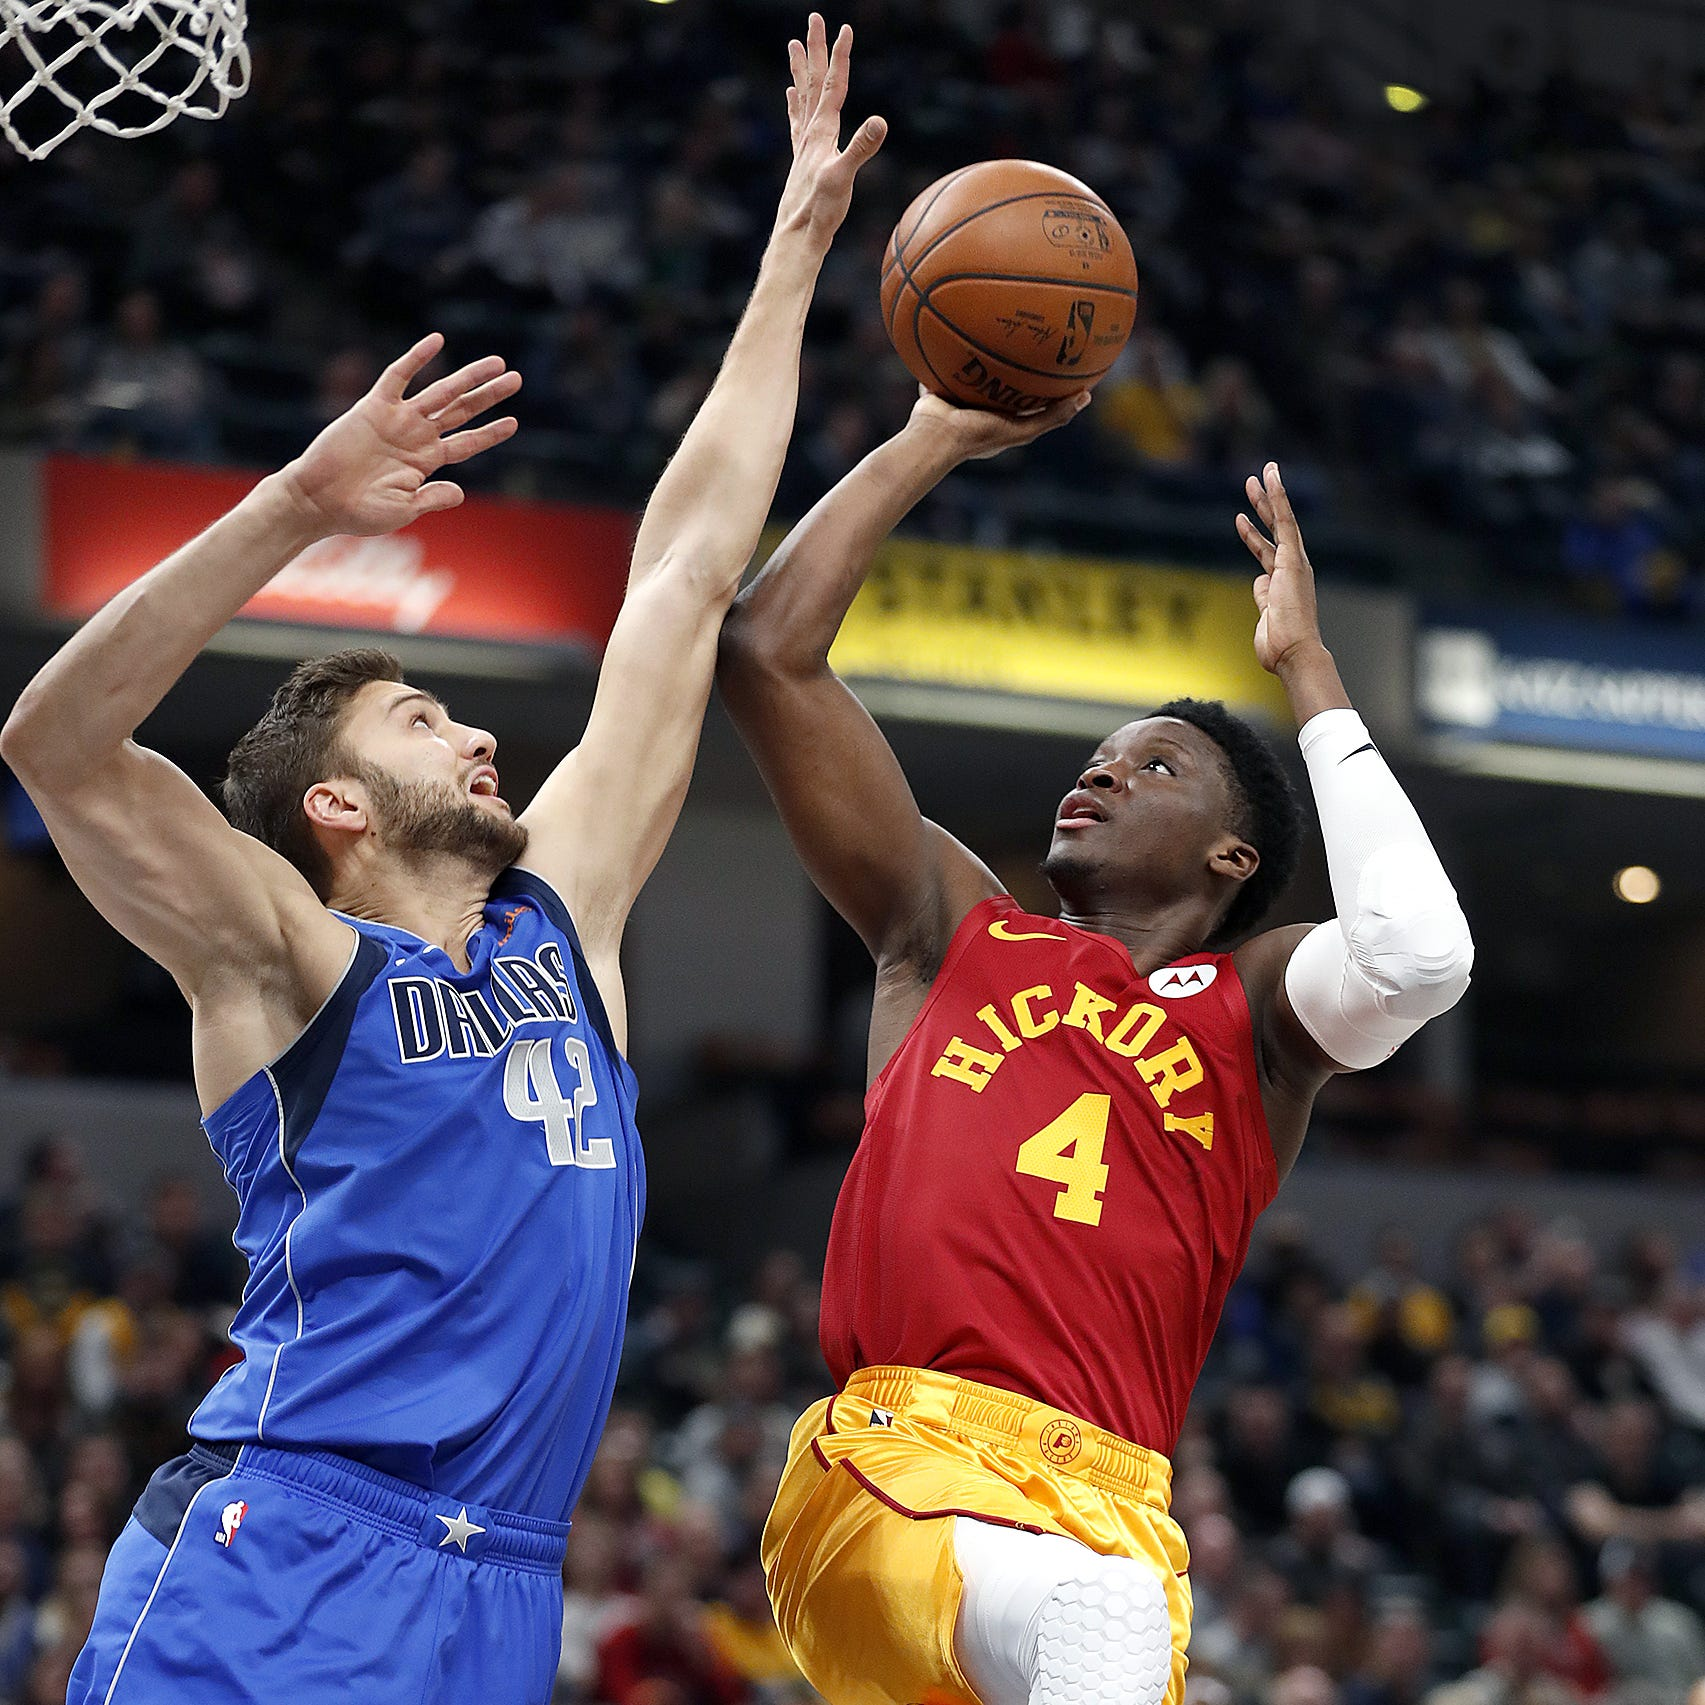 Pacers knock off Mavs, salute Dirk Nowitzki while Victor Oladipo's slump continues